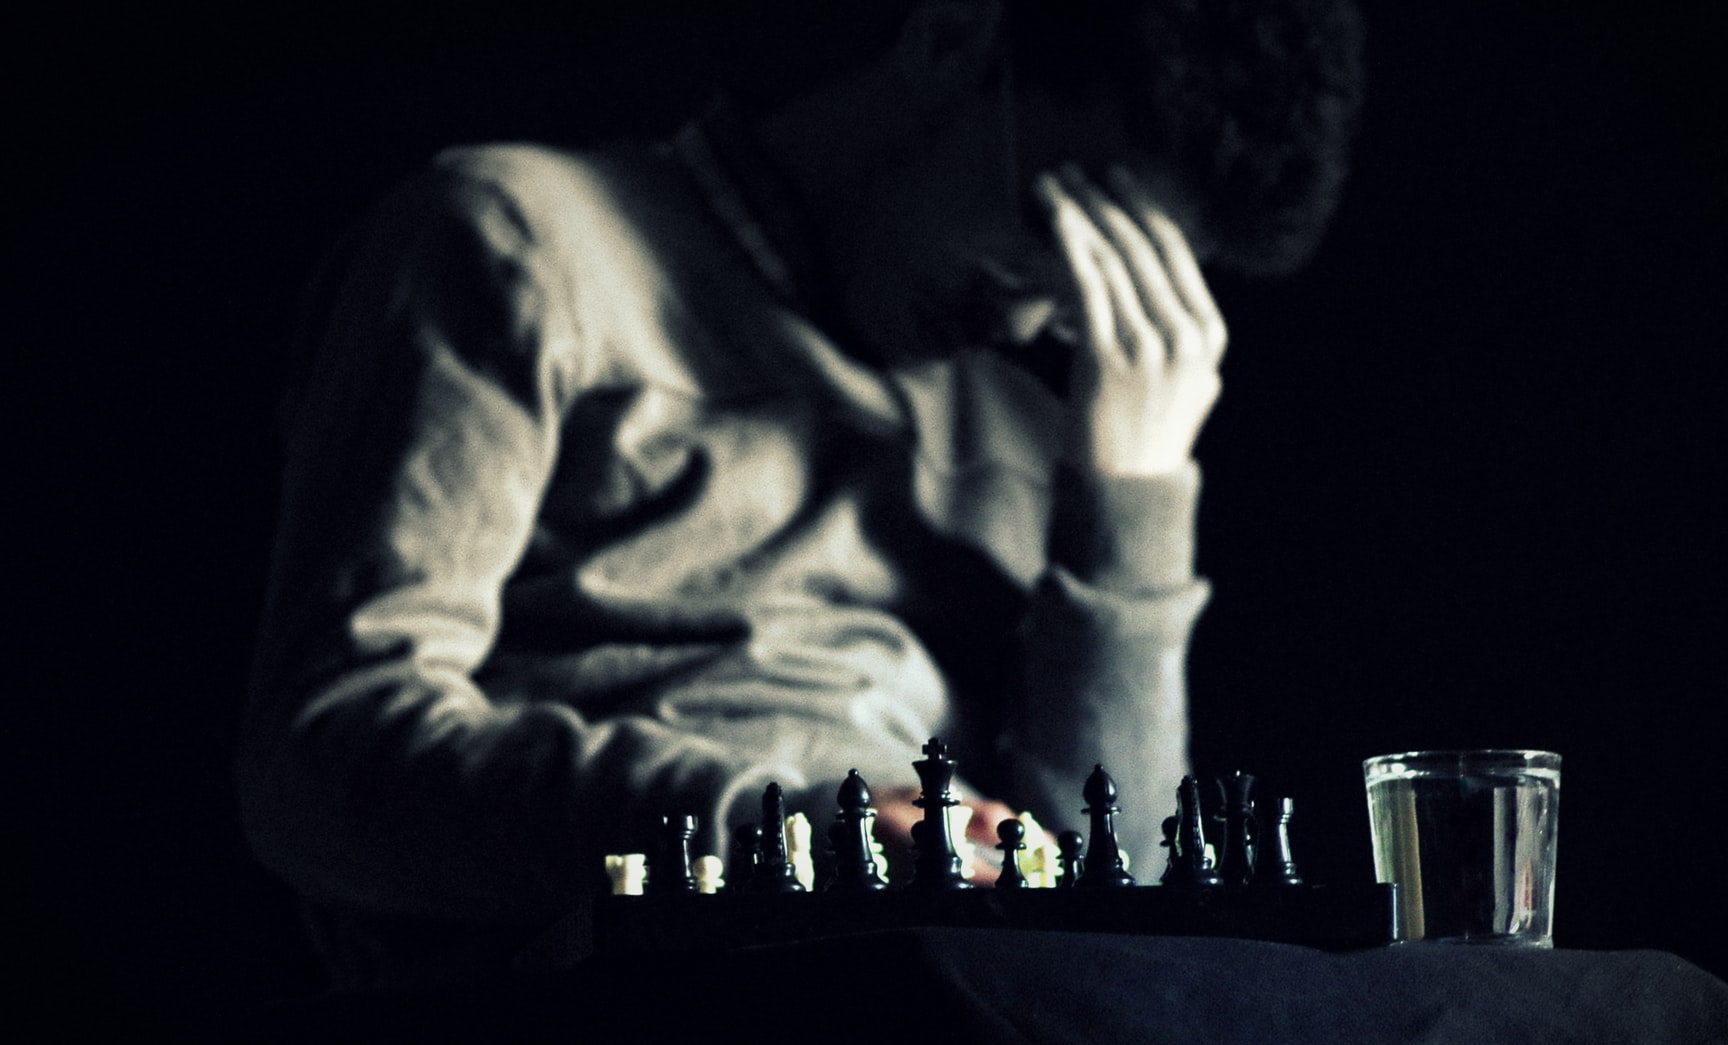 Depressed man with hand on face sitting in front of chessboard